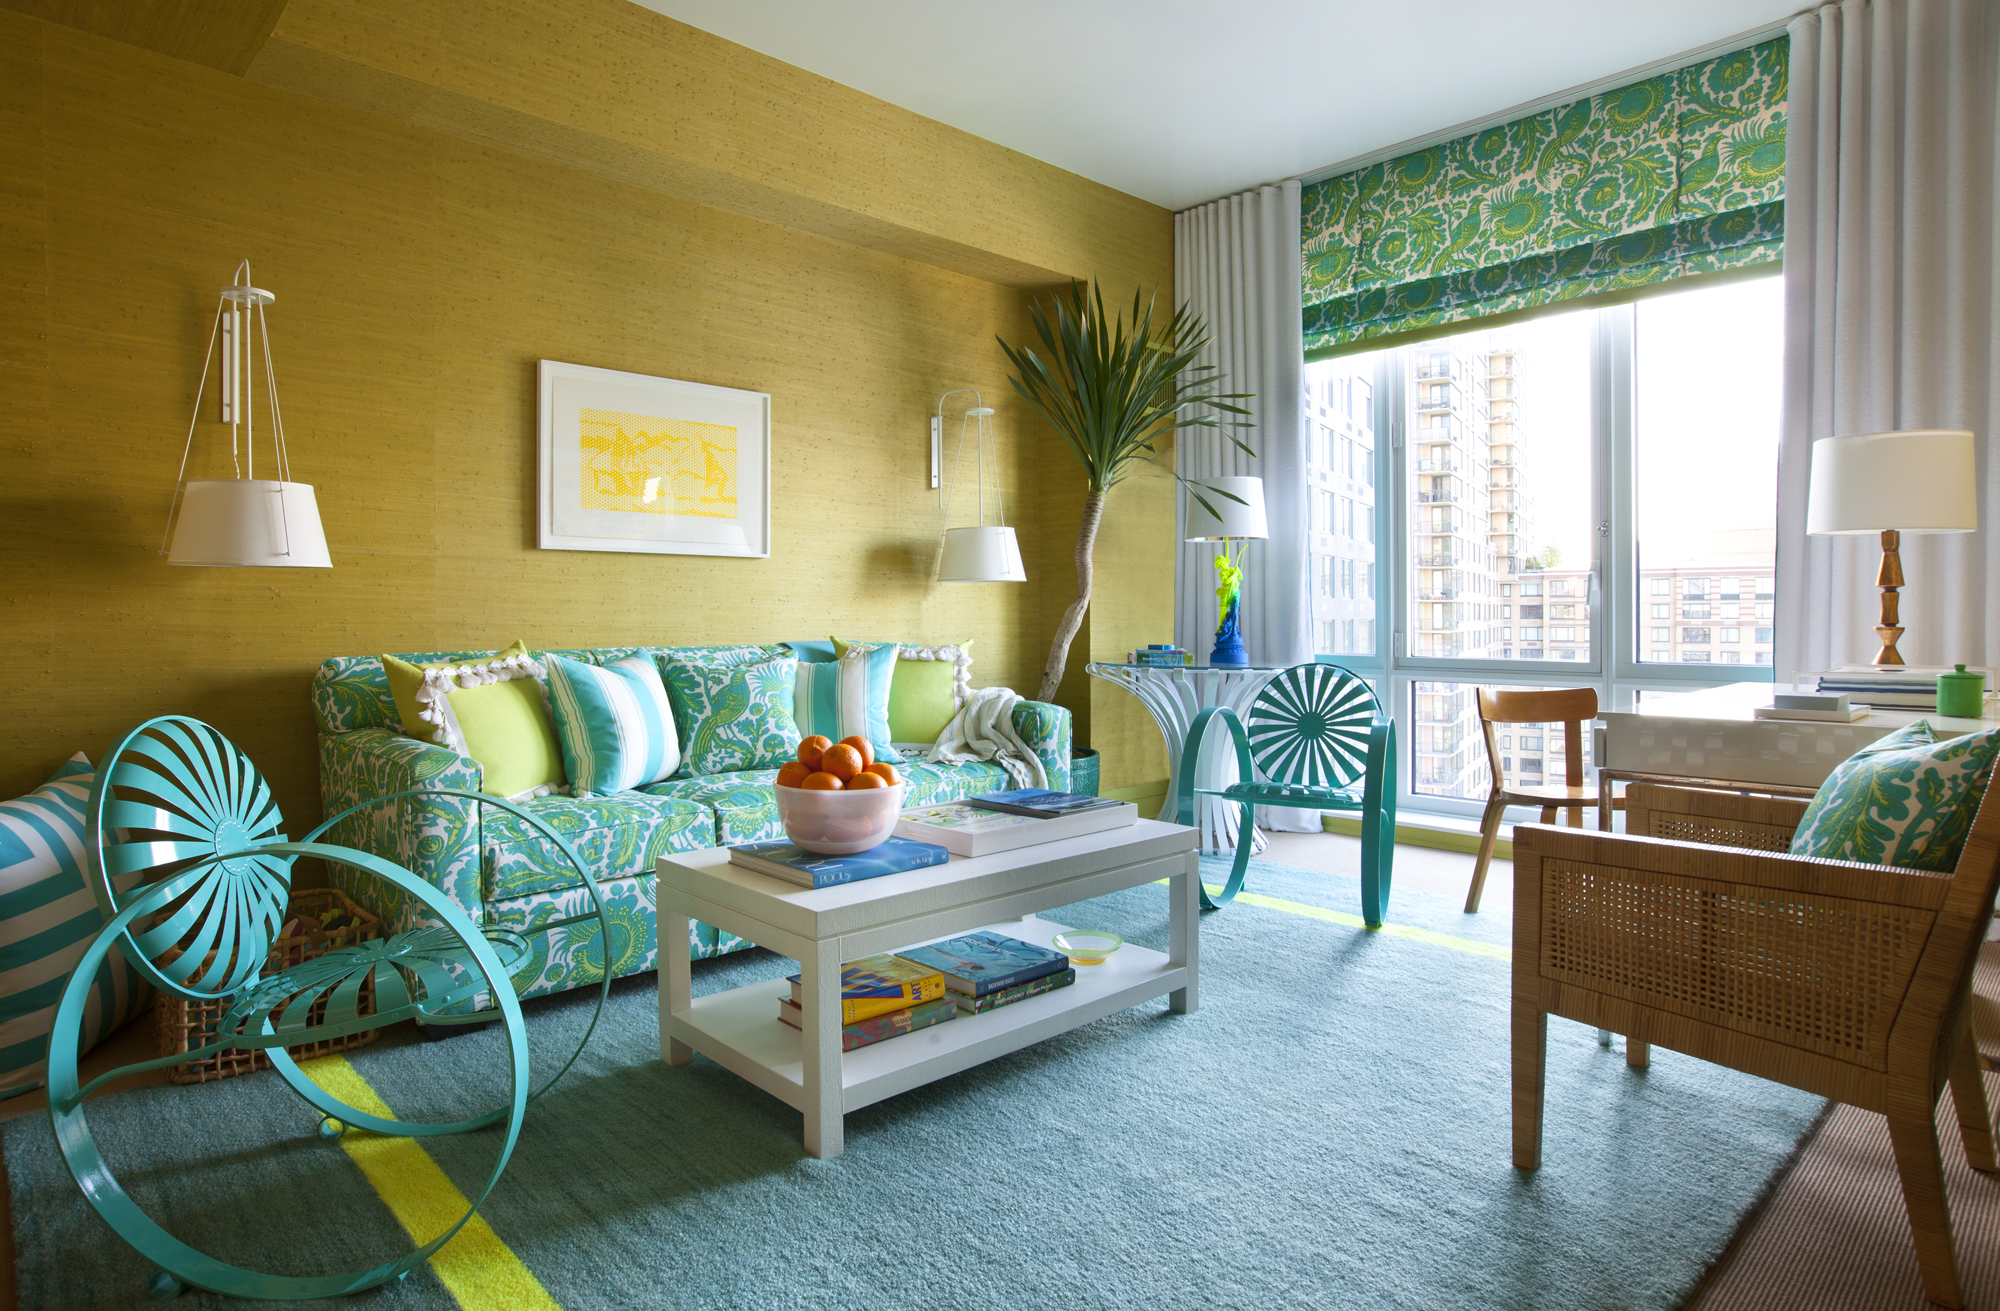 A bright-colored cabana with sunshine yellow textured walls and fun furnishings. By Scott Sanders